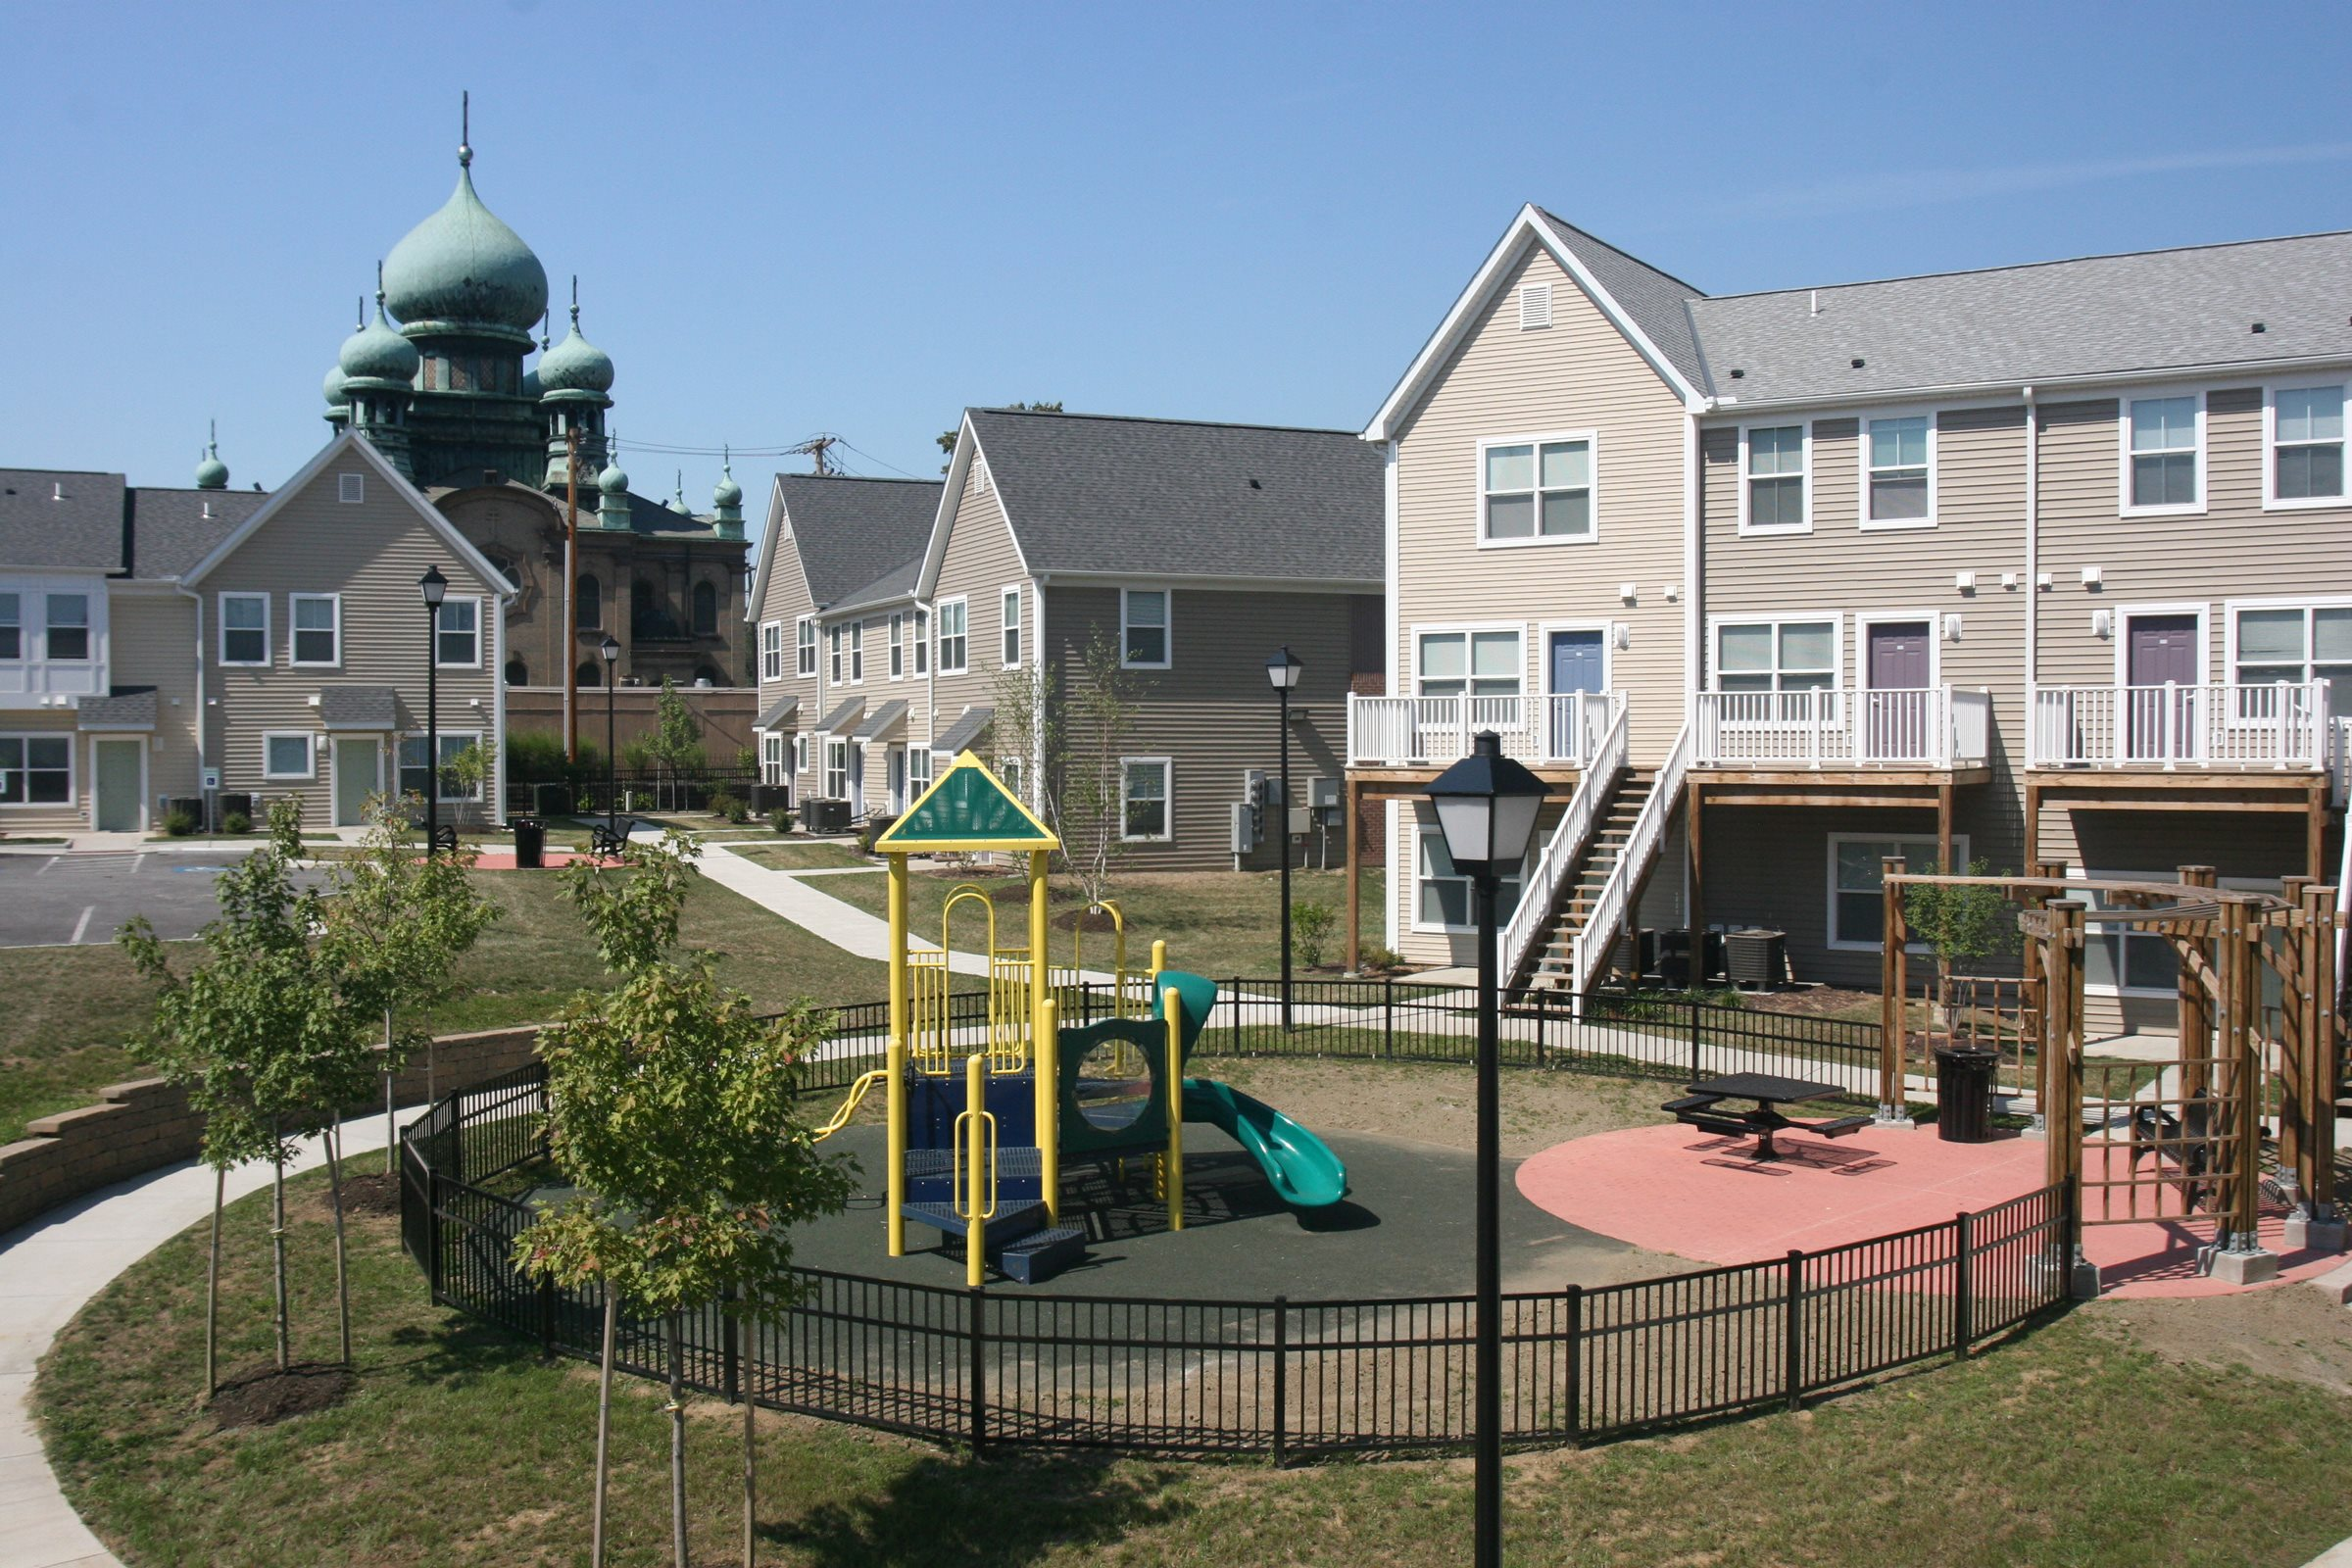 Apartment playground and apartment buildings-Tremont Pointe Apartments, Cleveland, OH 44113